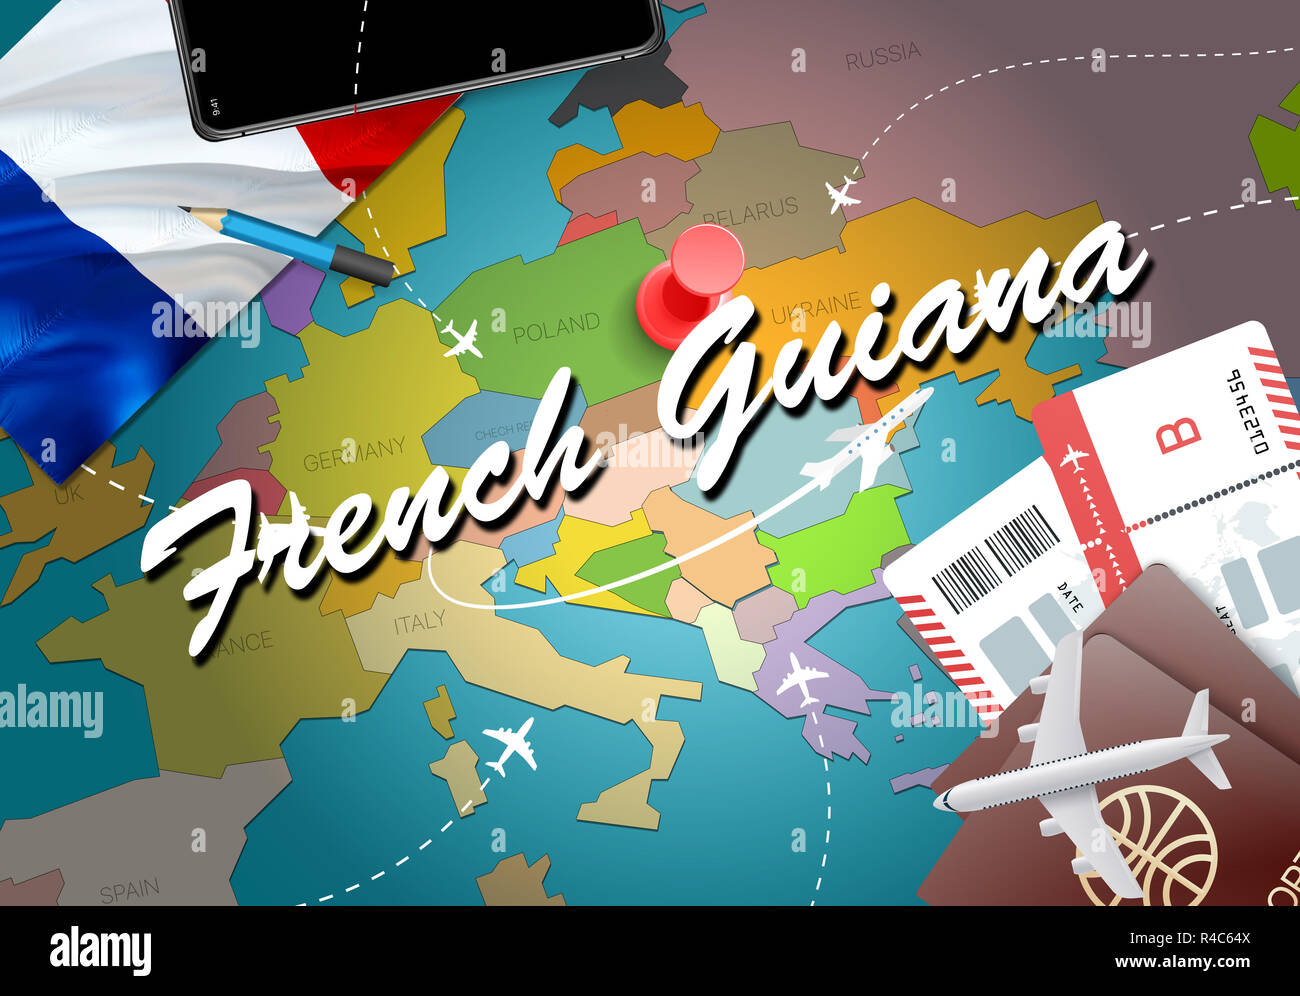 Travel Map Of France.French Guiana City Travel And Tourism Destination Concept France